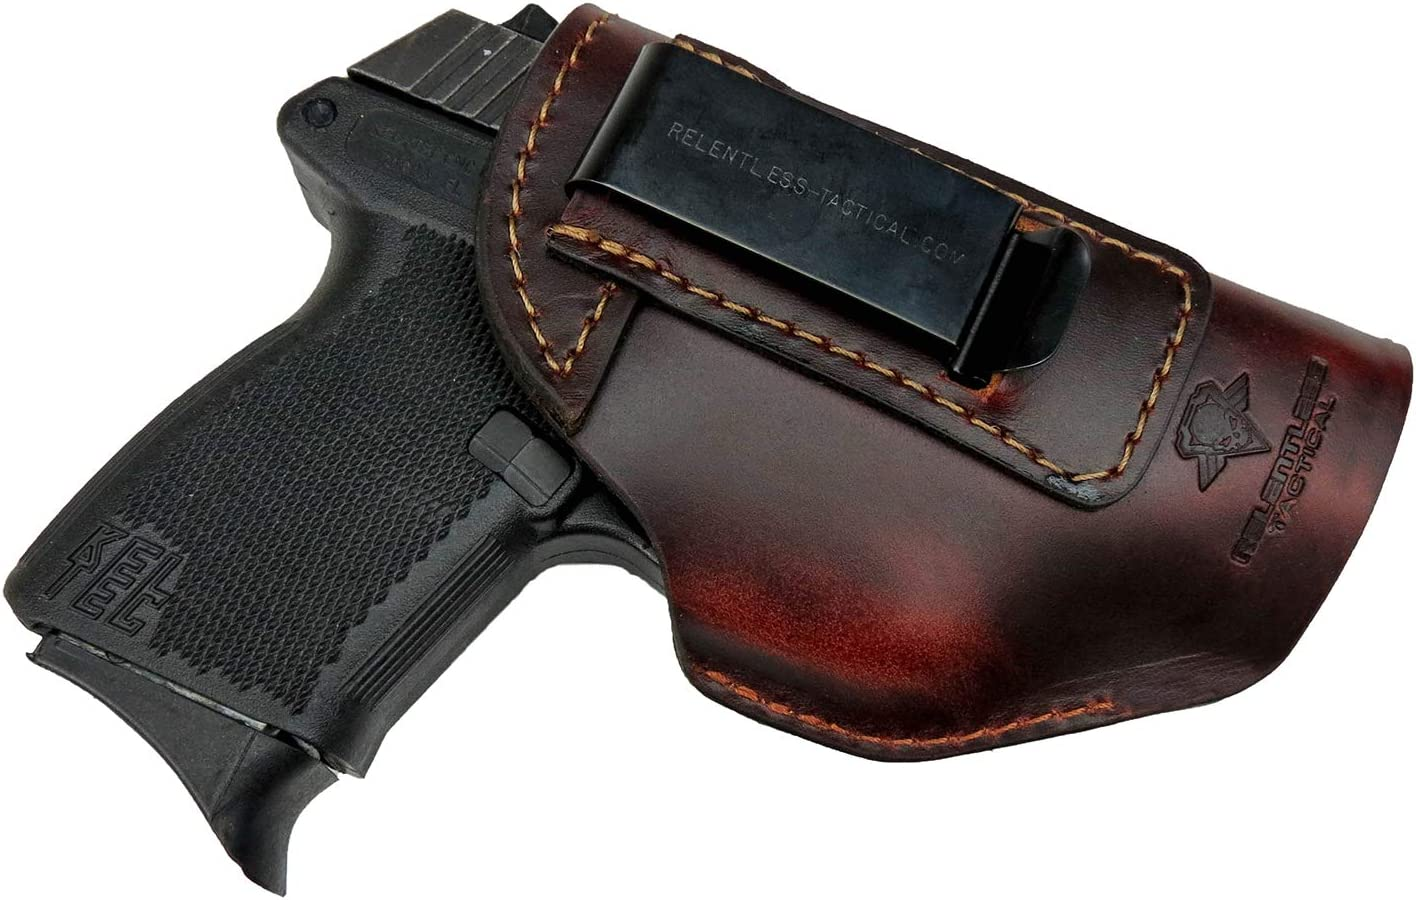 Leather Holster Sig p365 IWB by Relentless Tactical